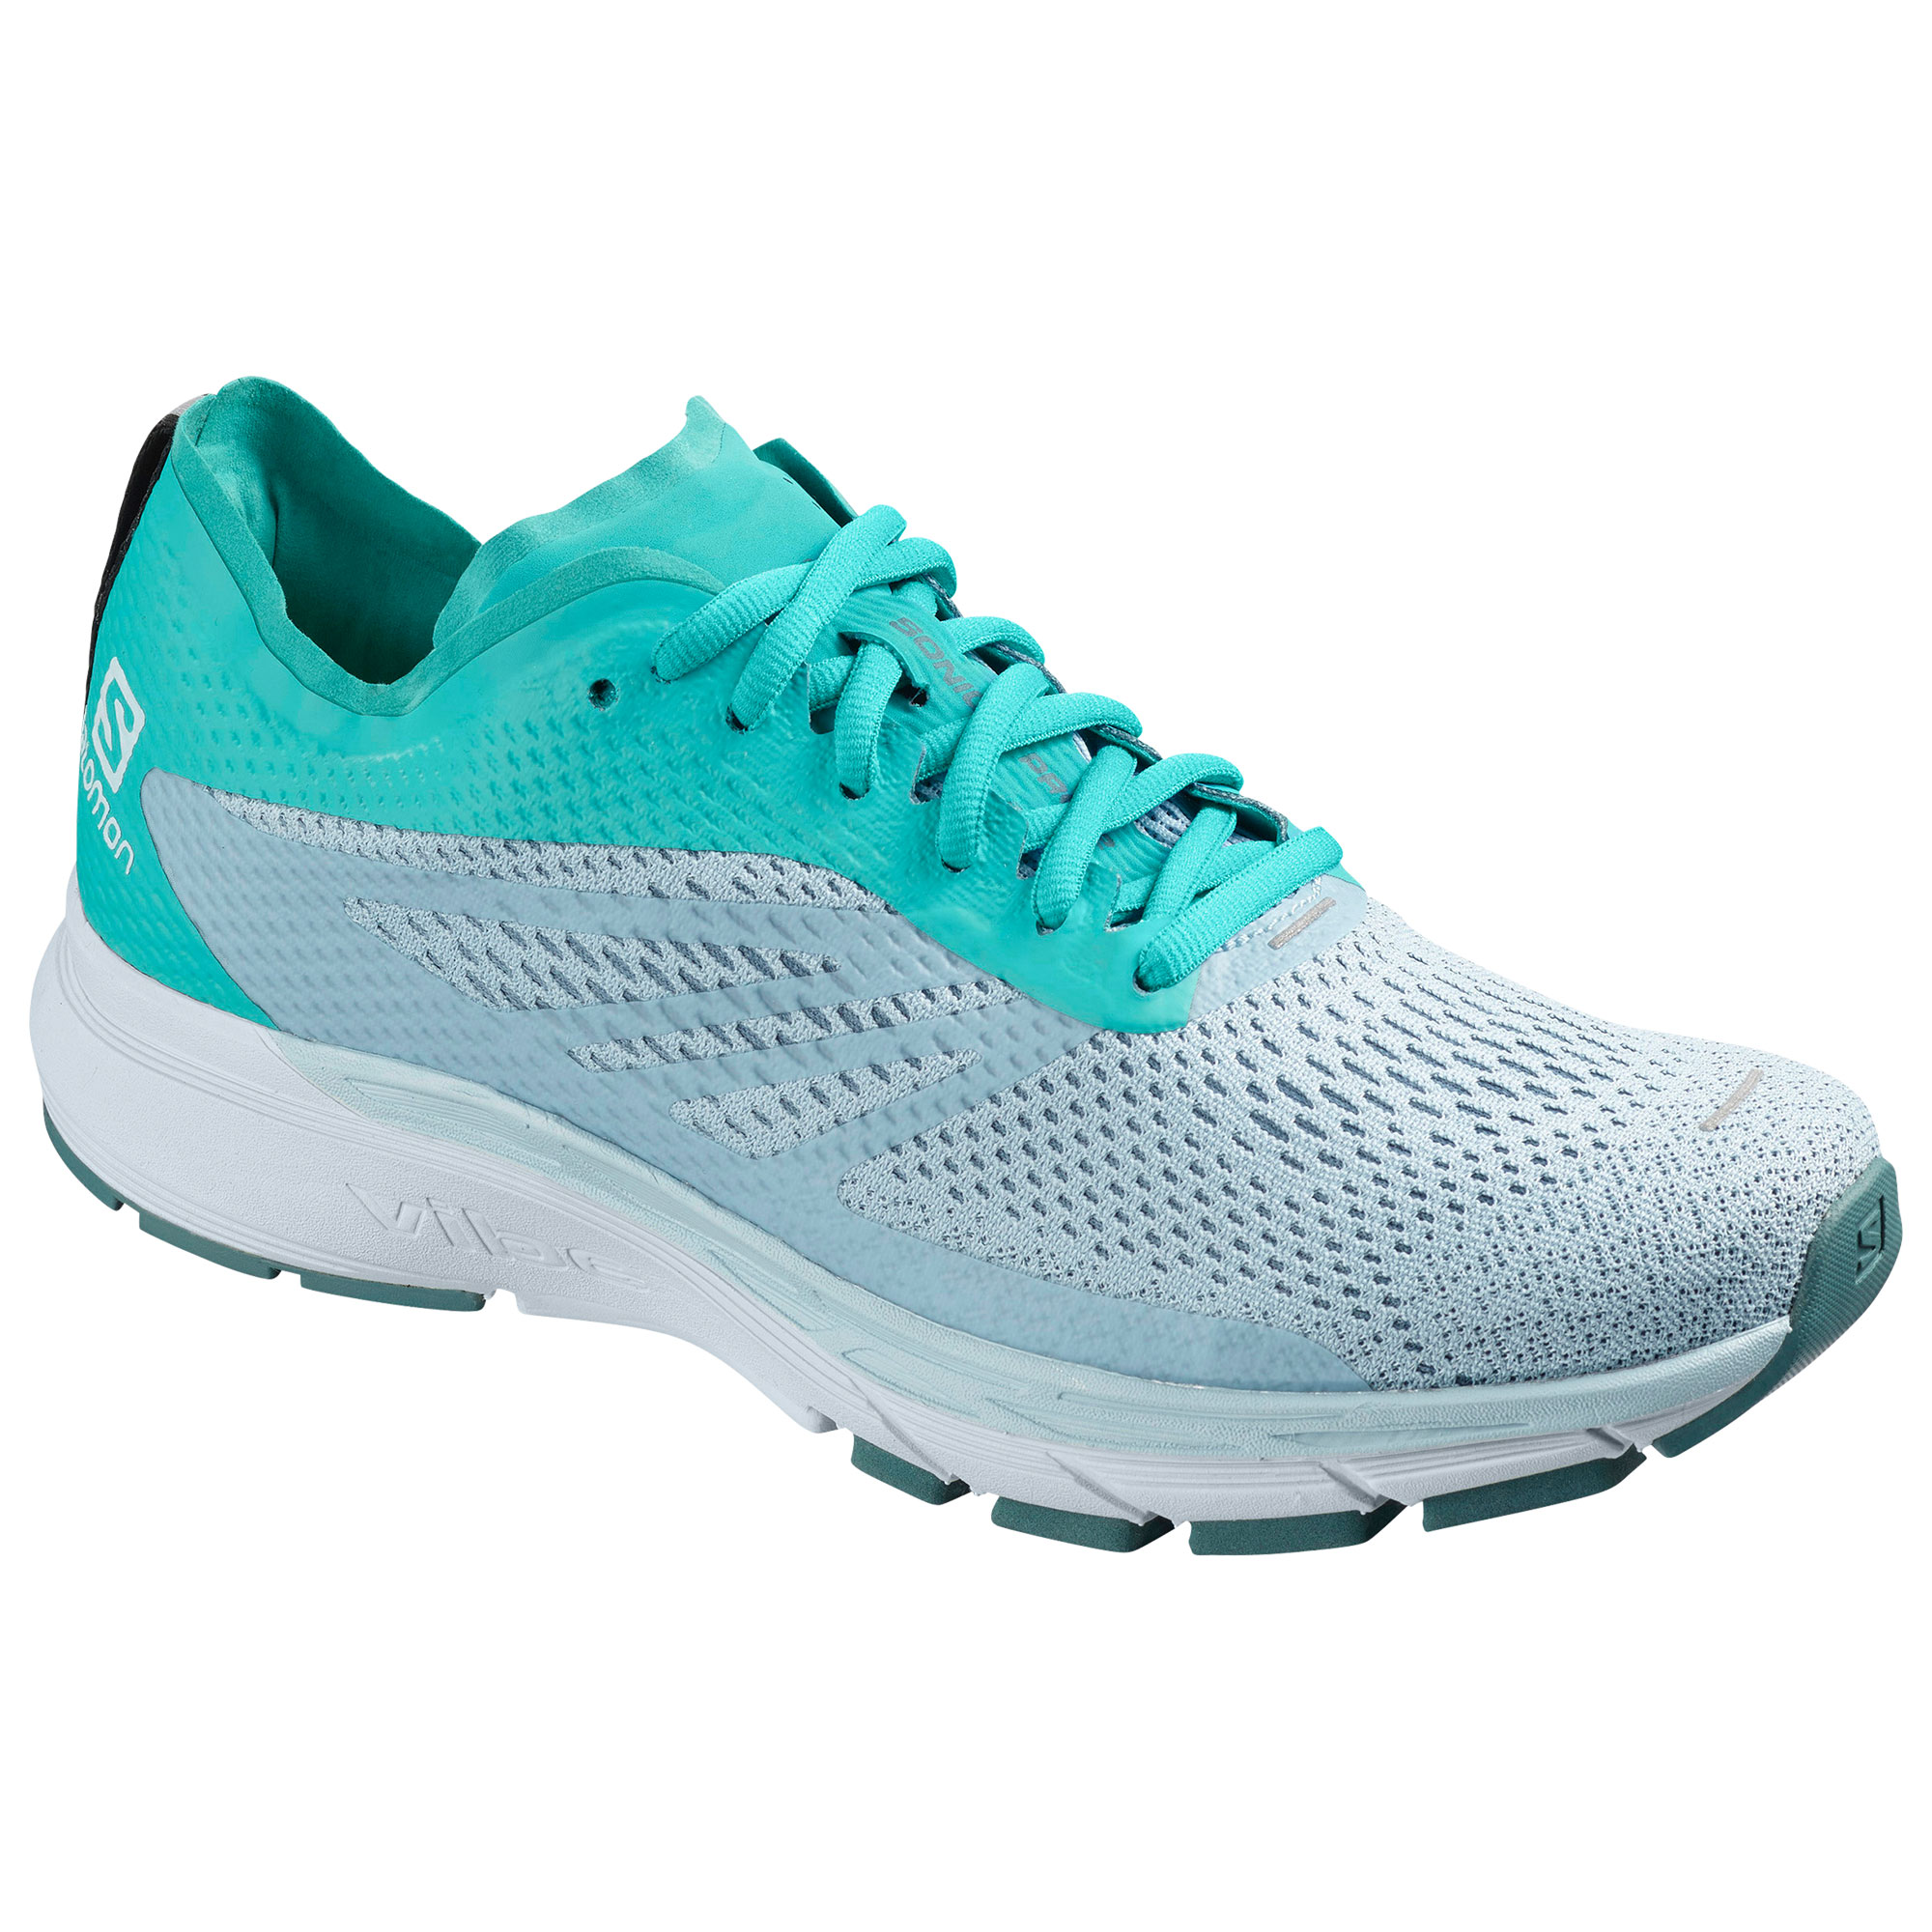 52bcaba72e49 Salomon Sonic RA Pro 2 Road Running Shoe - Womens with Free S H — CampSaver